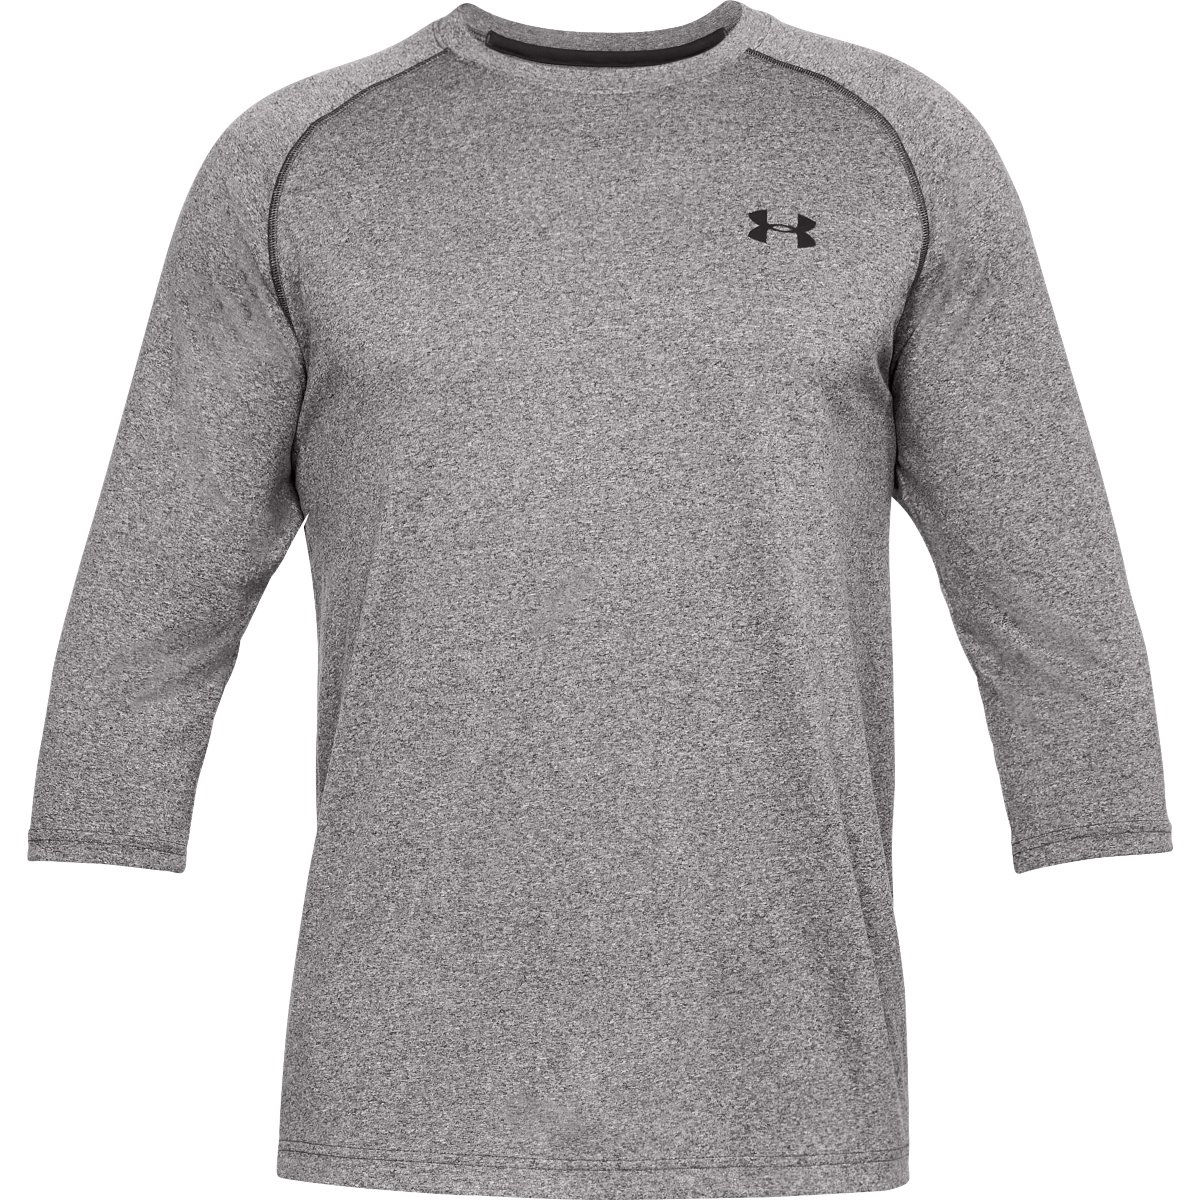 Maillot Under Armour Tech Power (manches 3/4) - S